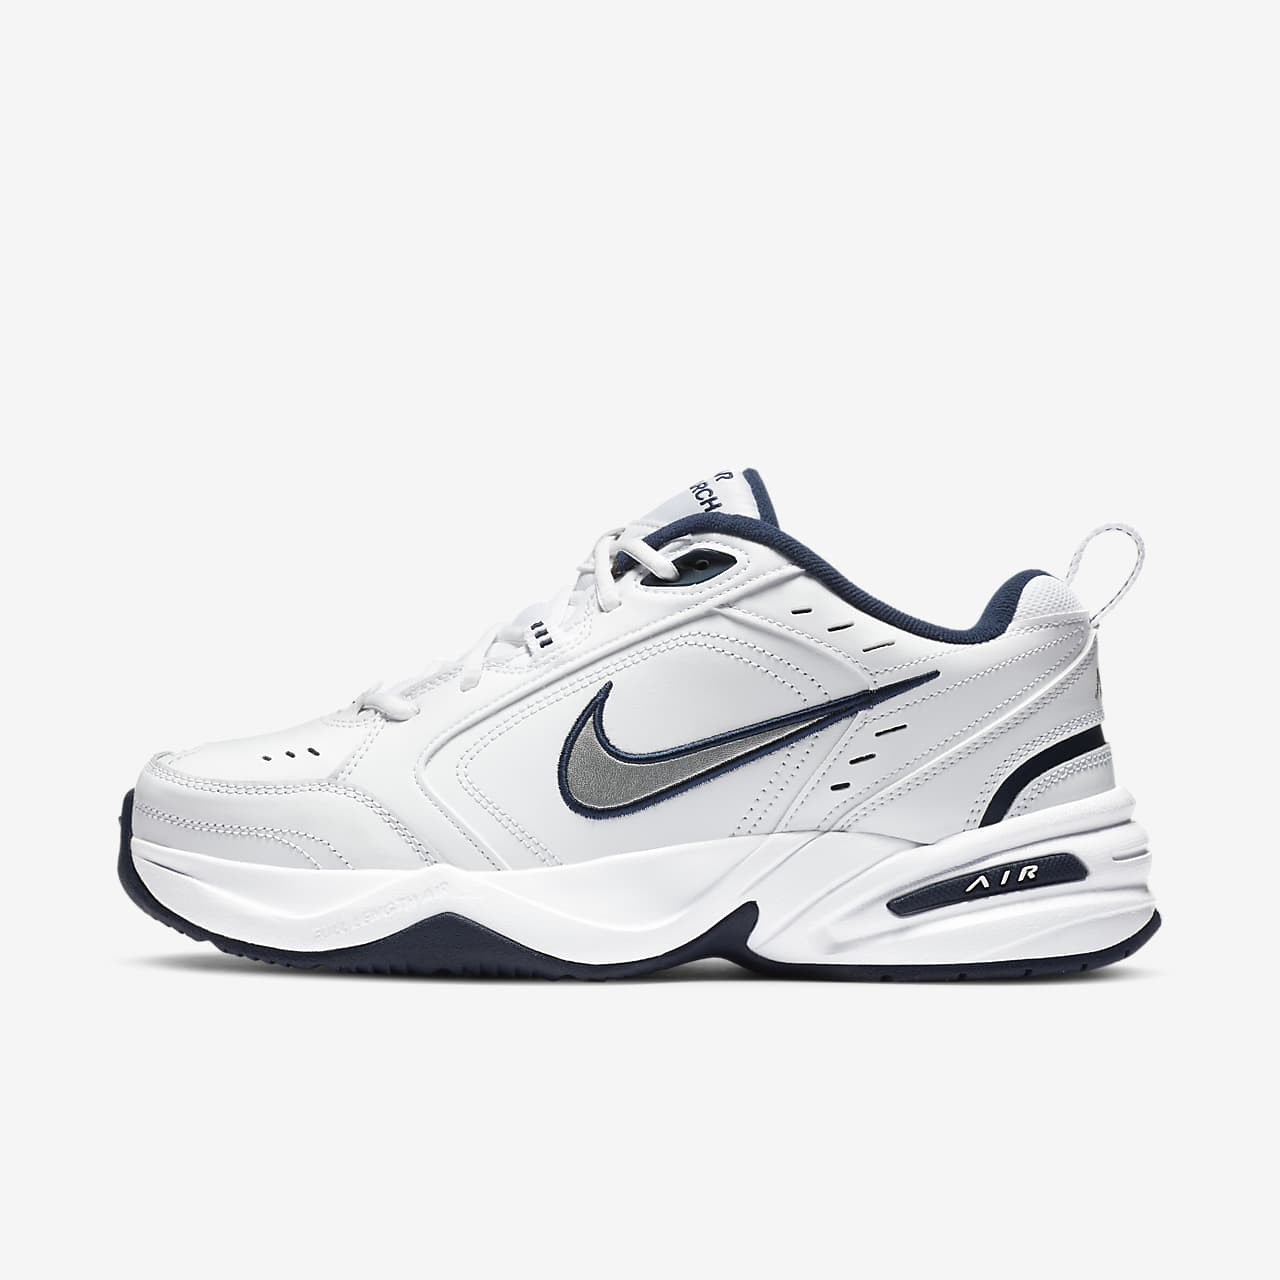 website for discount amazing selection great deals Nike Air Monarch IV Lifestyle/Gym Shoe